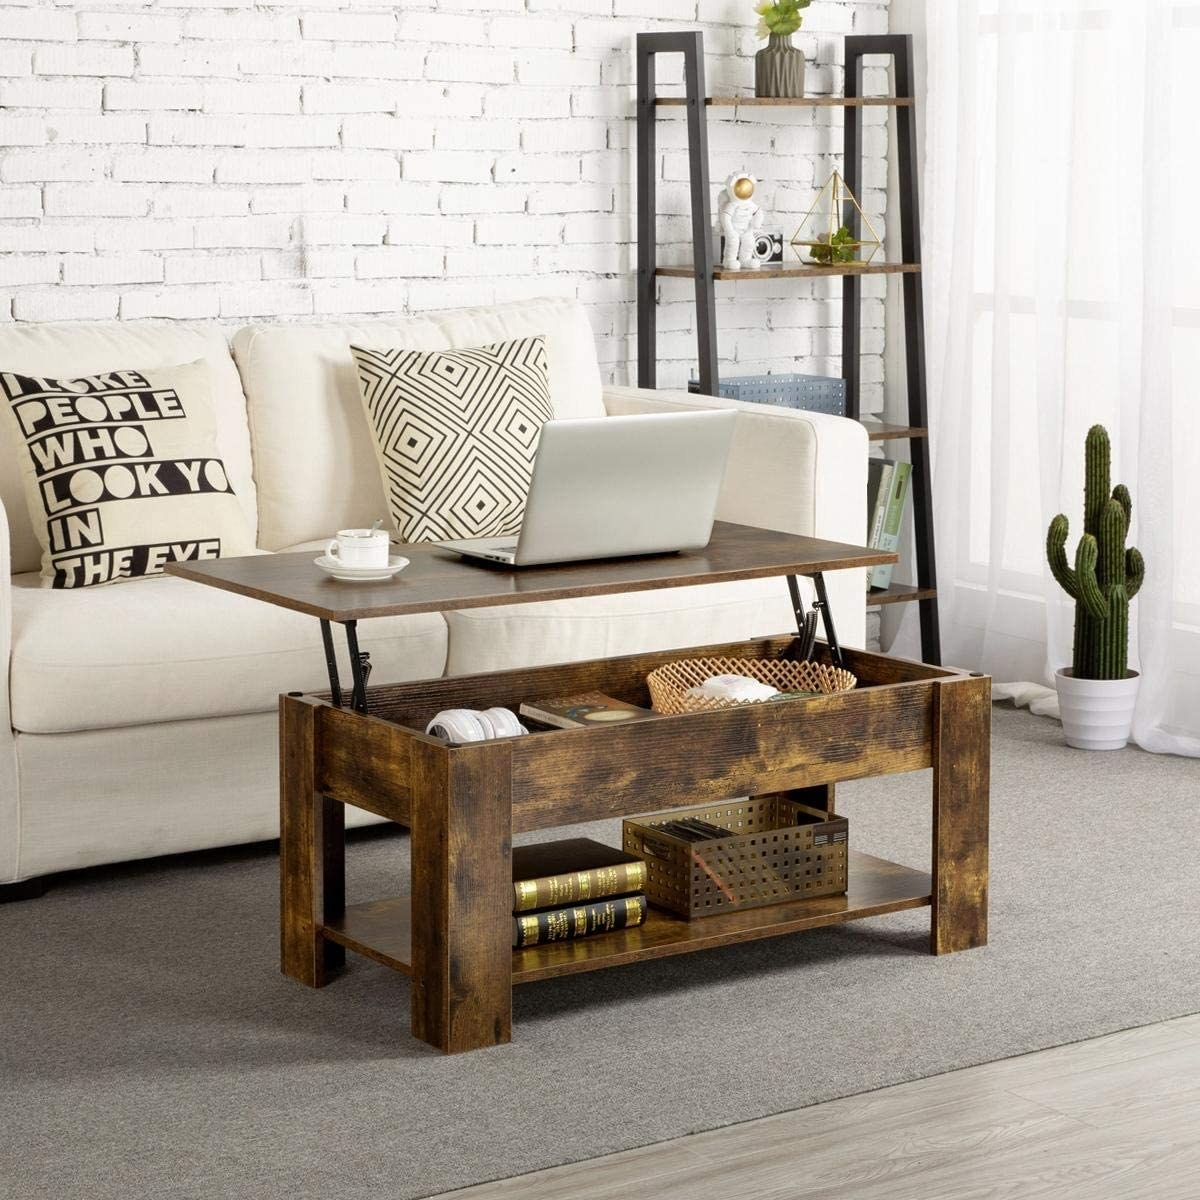 The dark wood coffee table with the top lifted and a laptop and mug on it